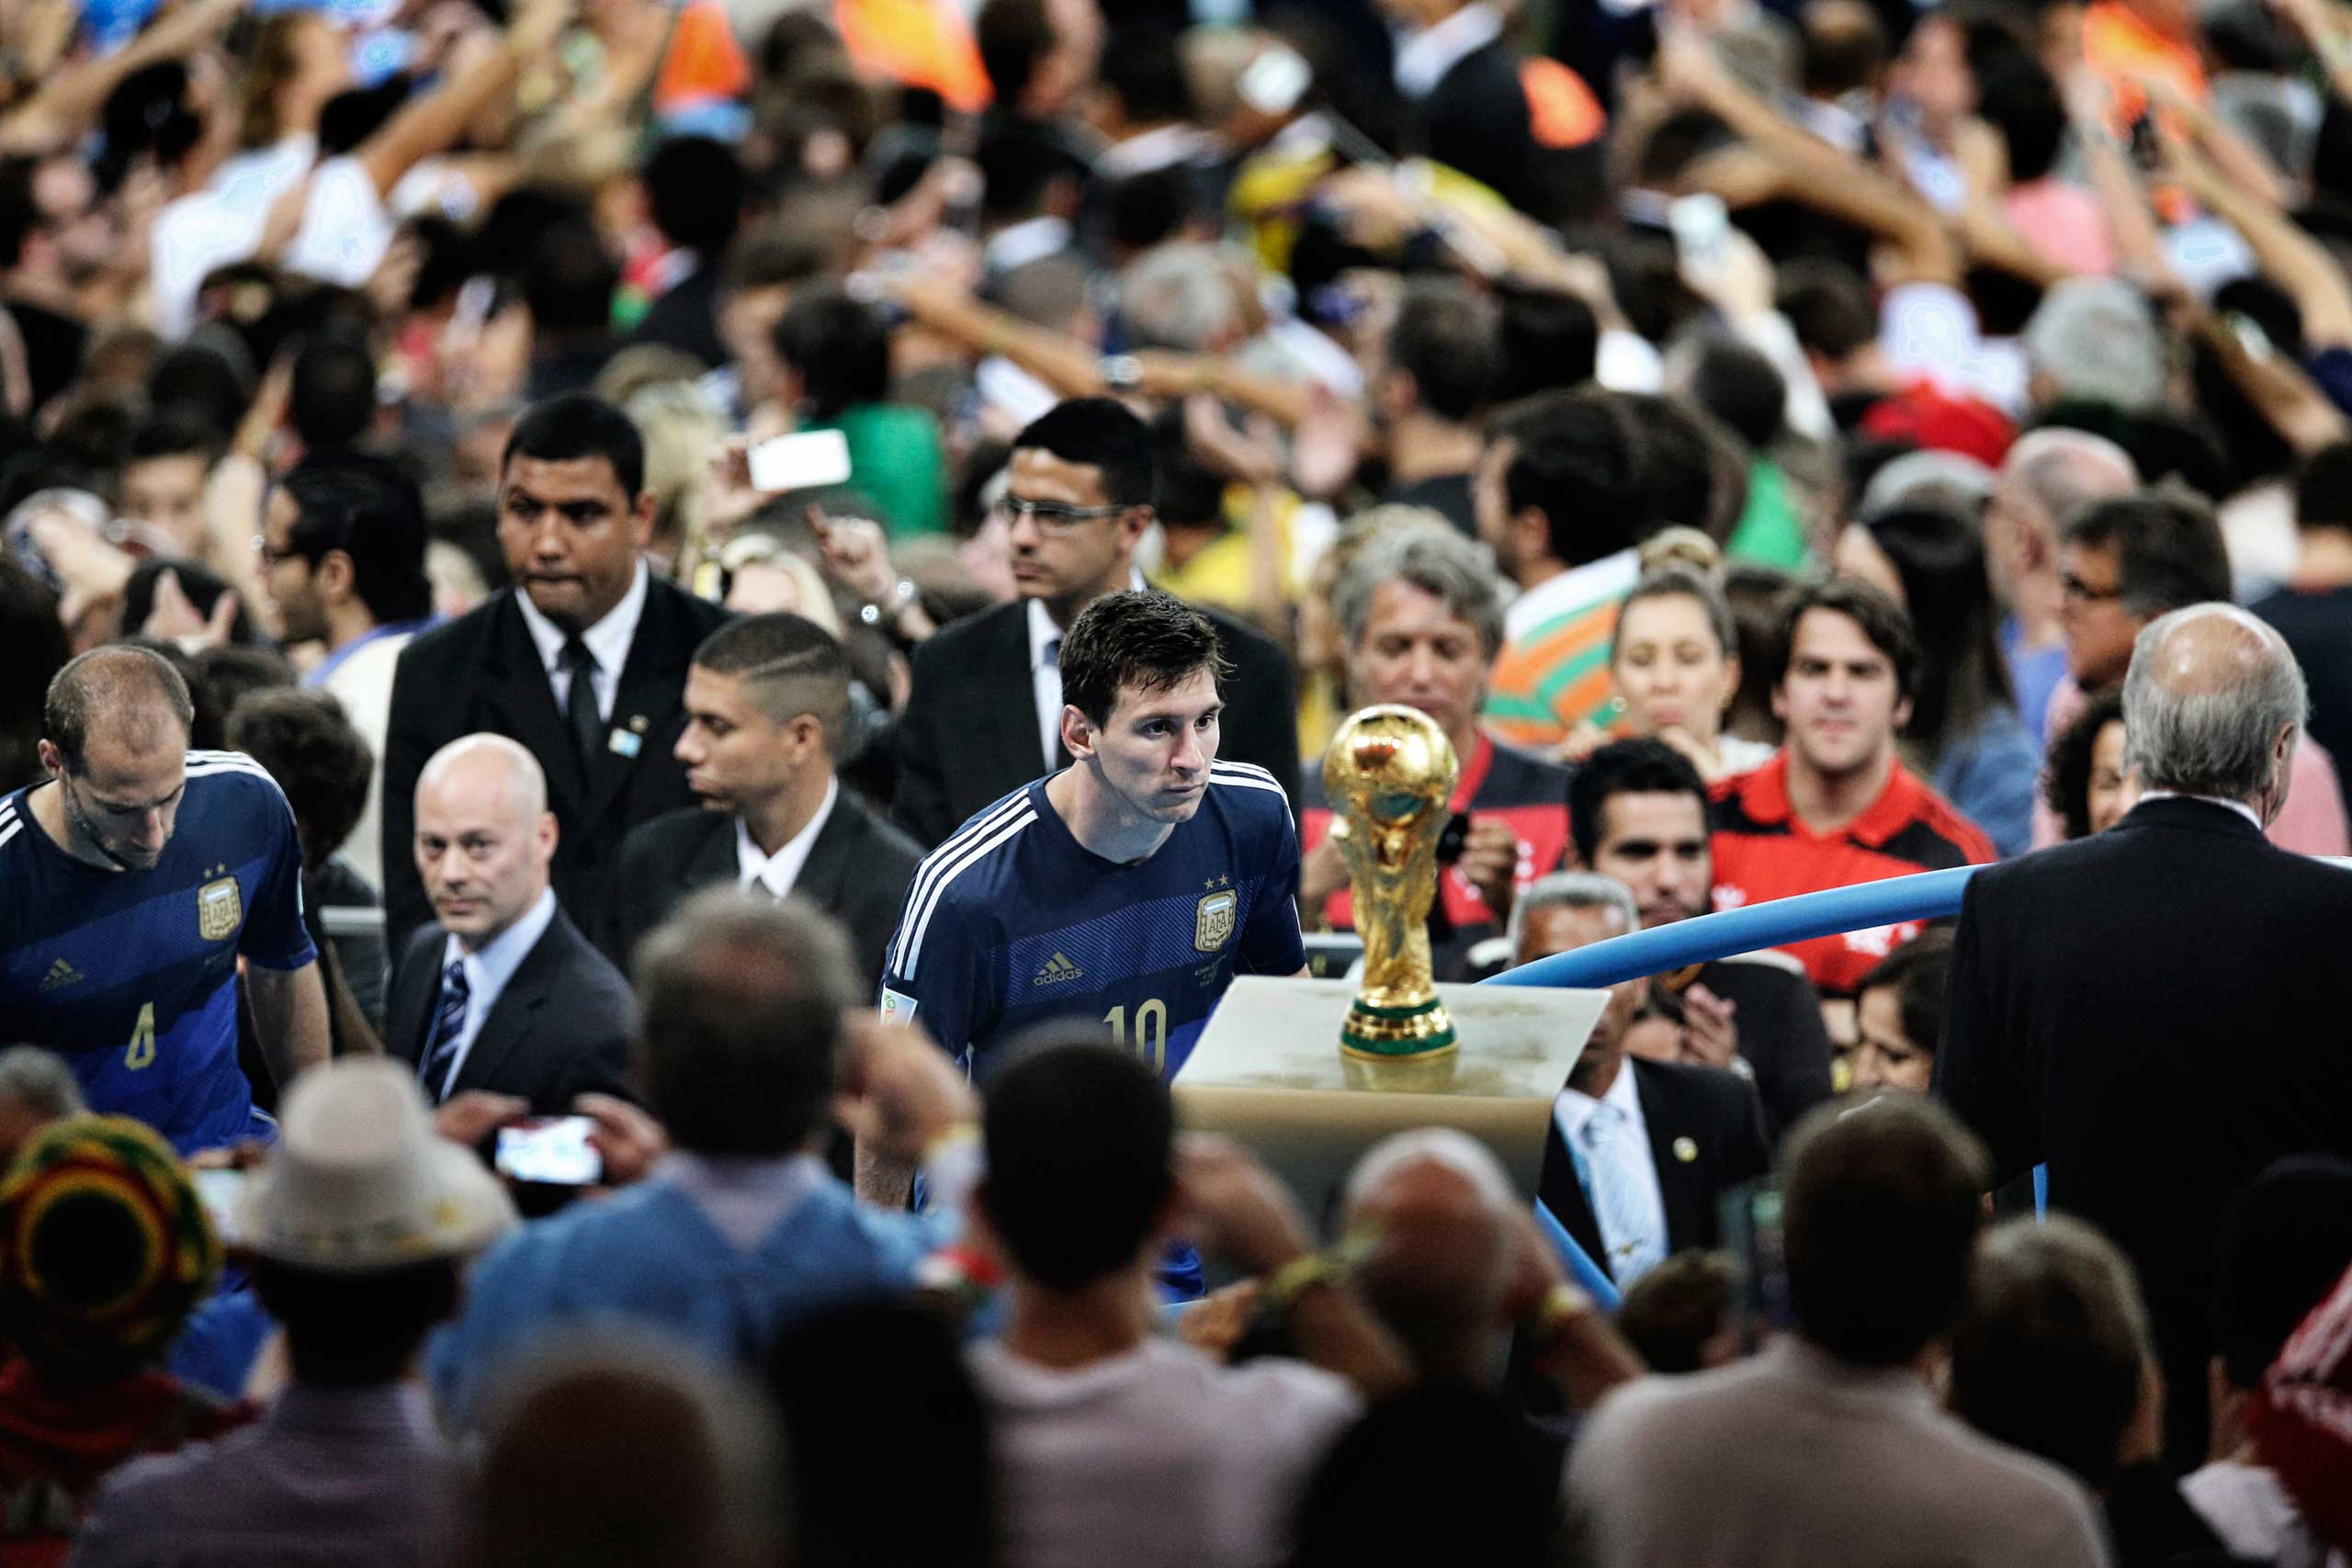 <b>First Prize Sports Category, Singles</b>                                   Argentina player Lionel Messi comes to face the World Cup trophy during the final celebrations at Maracana Stadium. His team lost to Germany 1-0, after a goal by Mario Götze in extra time.